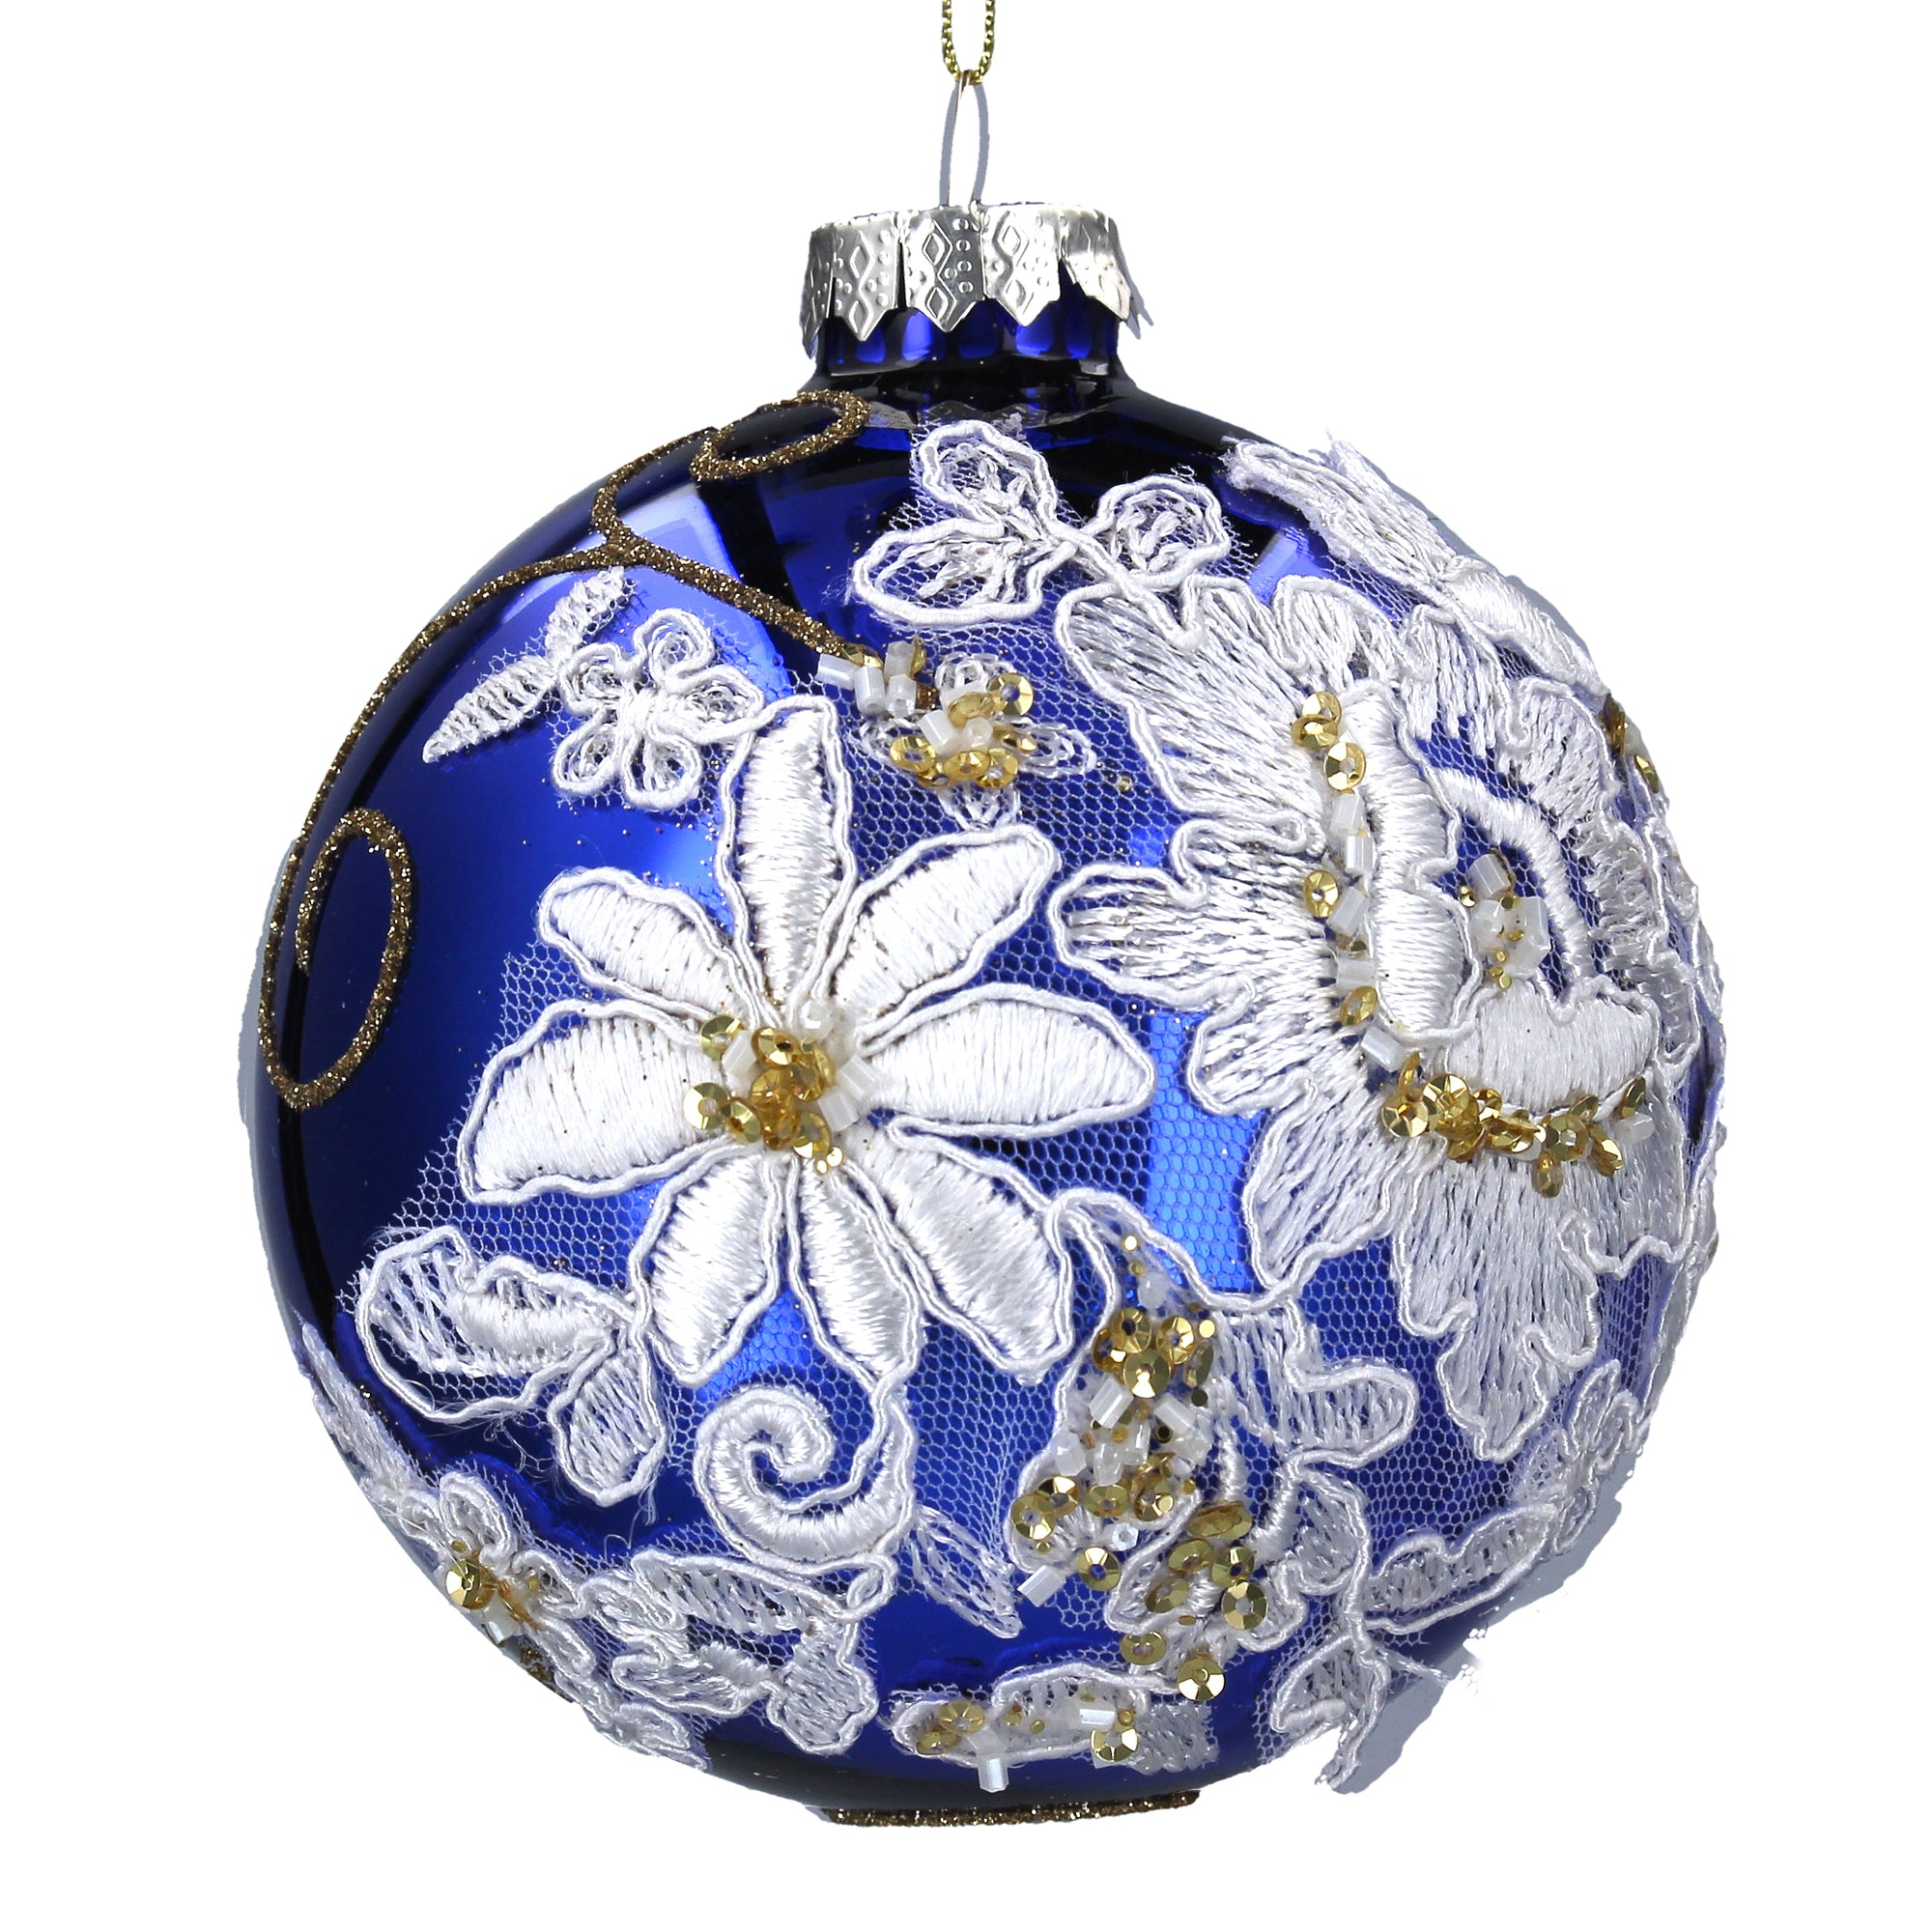 Blue Glass Ball Ornament with White Lace Flowers | Putti Celebrations